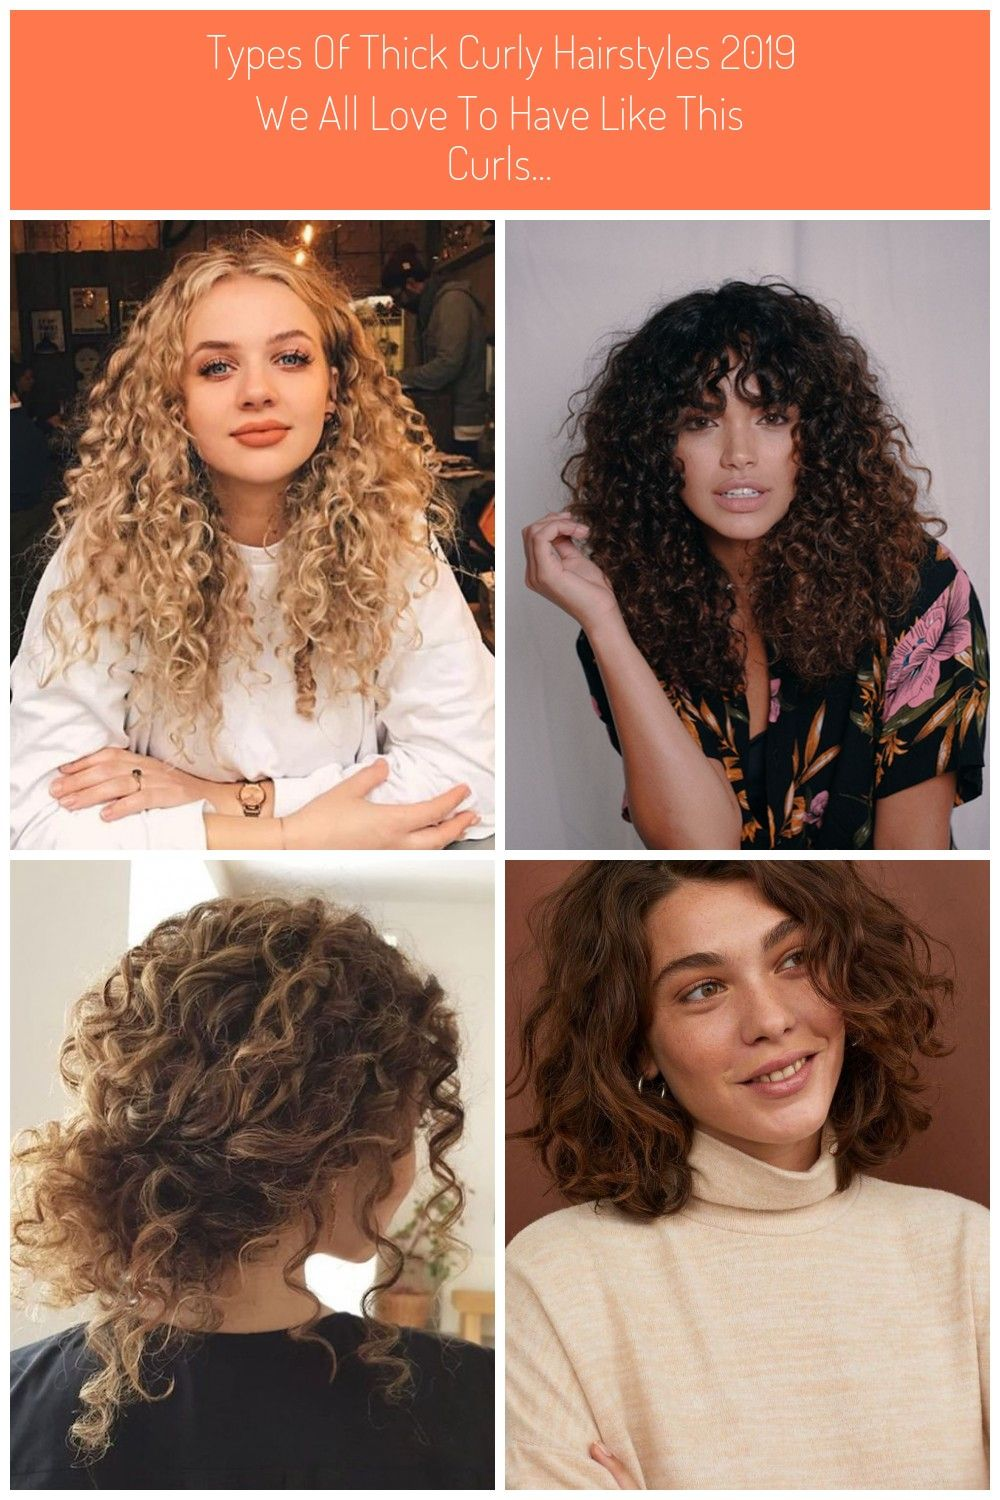 Types Of Thick Curly Hairstyles 2019 We All Love To Have Like This Curls Curly Hair Styles Long Silky Hair Hair Styles